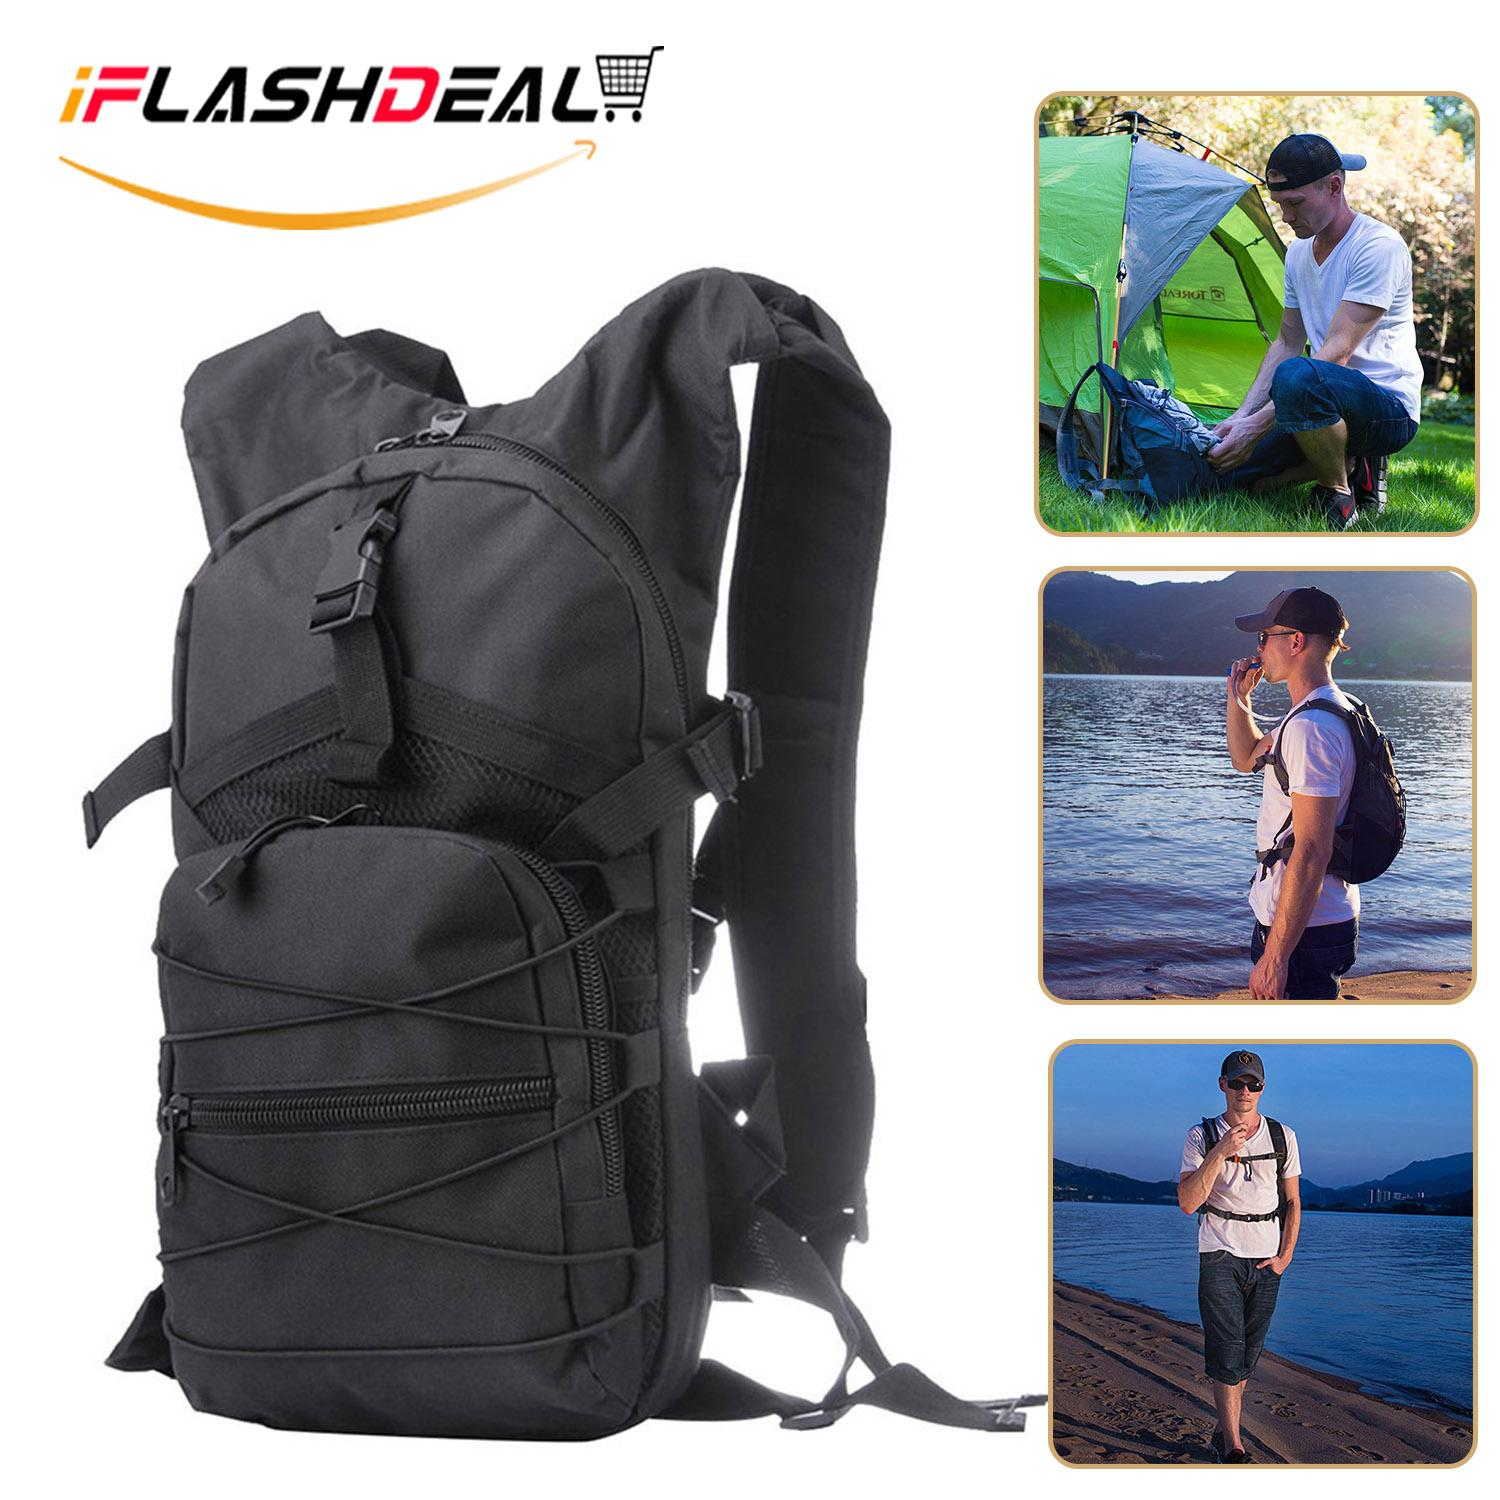 Iflashdeal Hiking Backpack, Water-Resistant Travel Cycling Backpack, Lightweight Back Pack For Outdoor, Camping 15l By Iflashdeal.